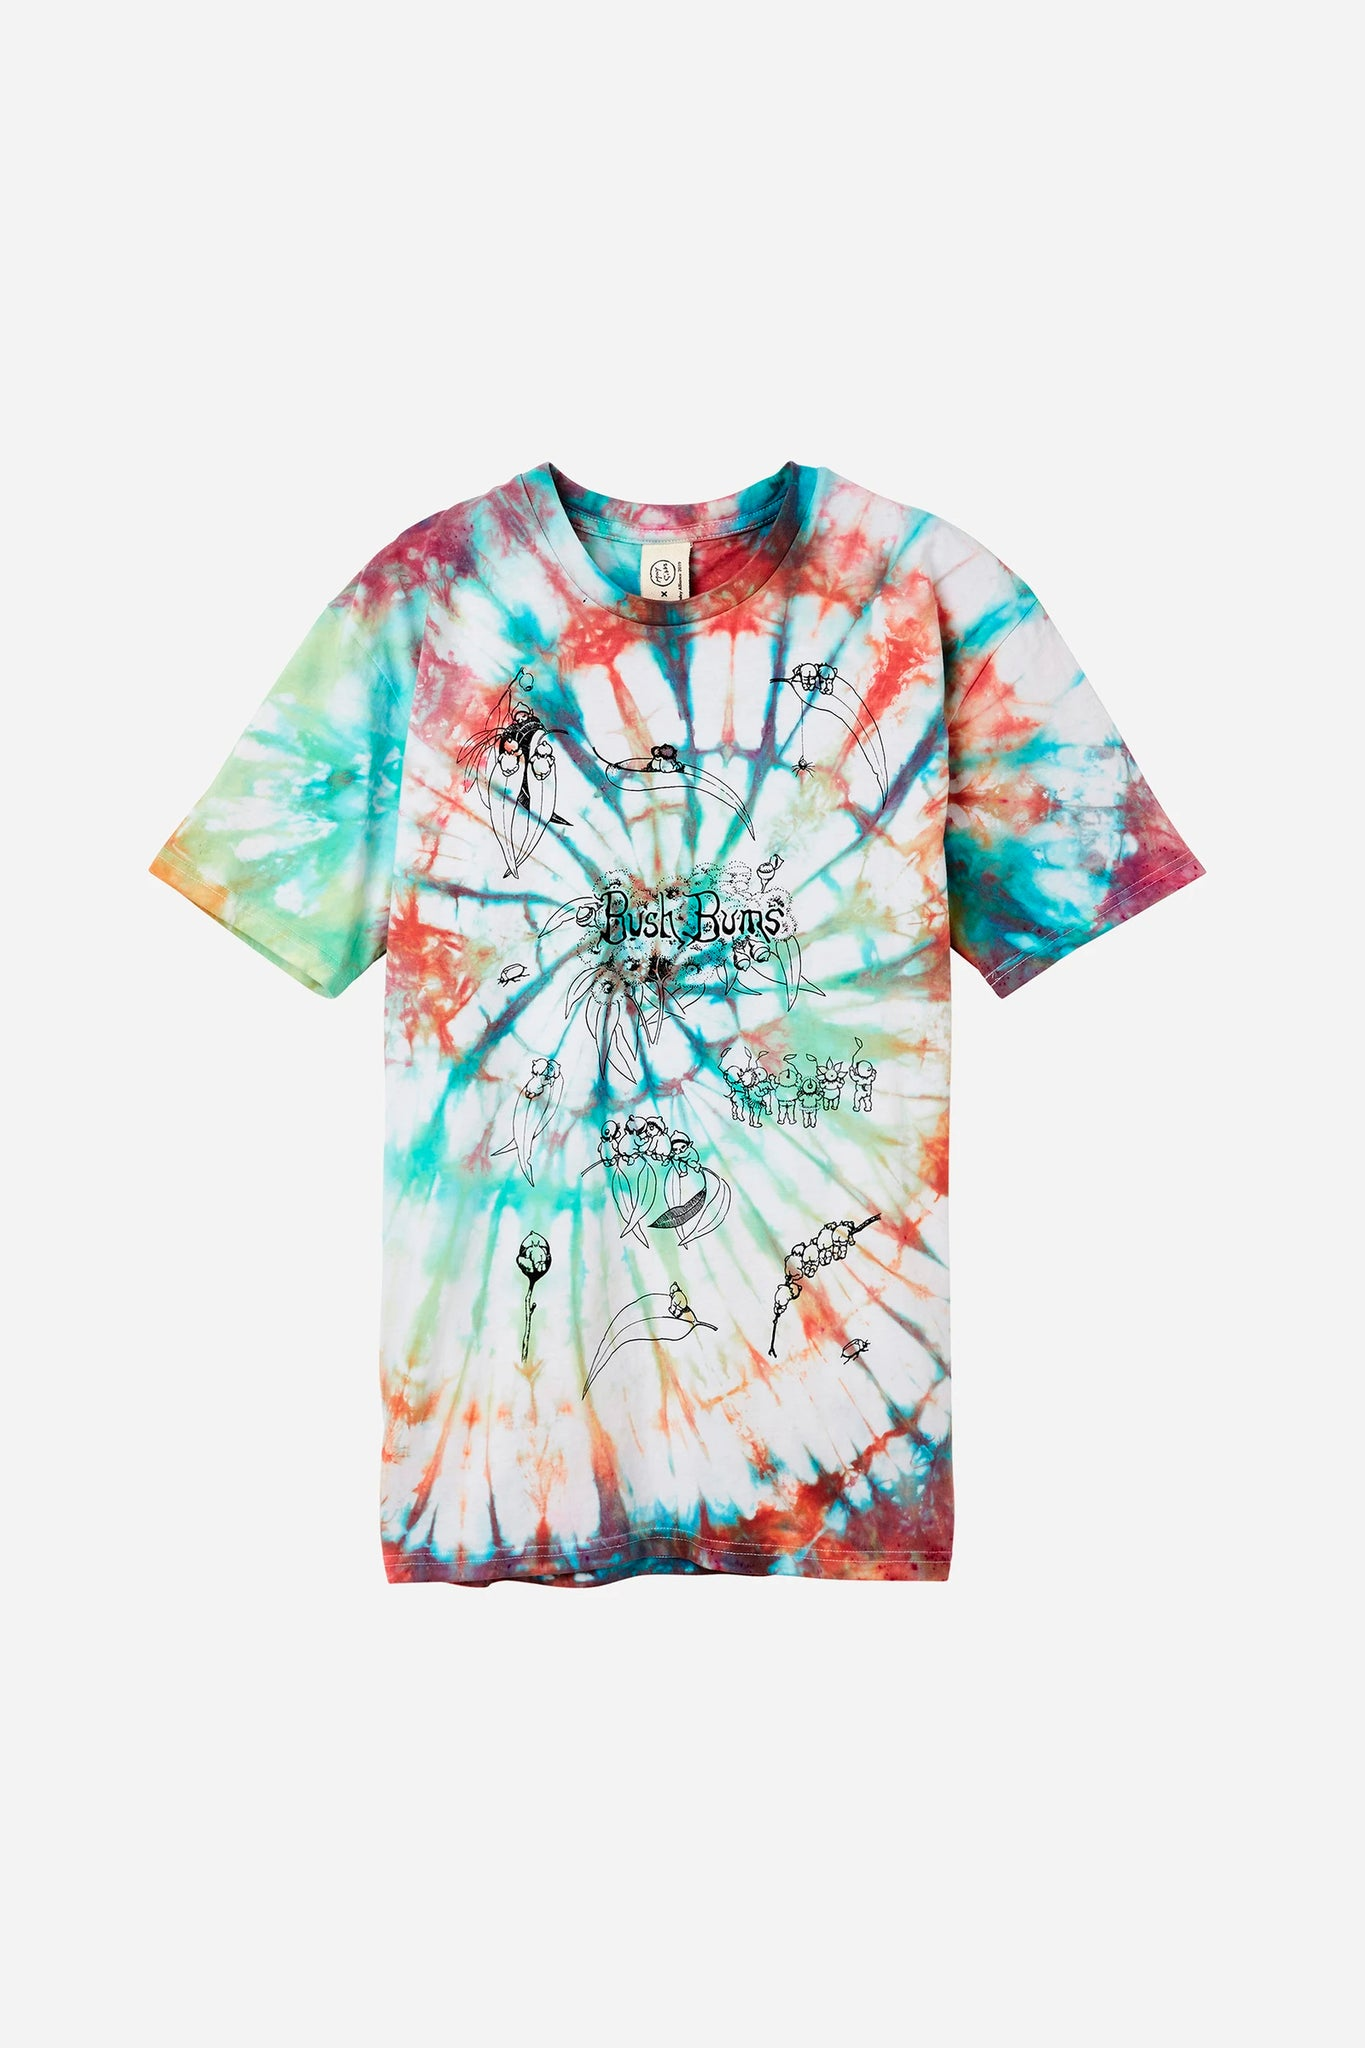 ART DYE BUSH BUMS TEE